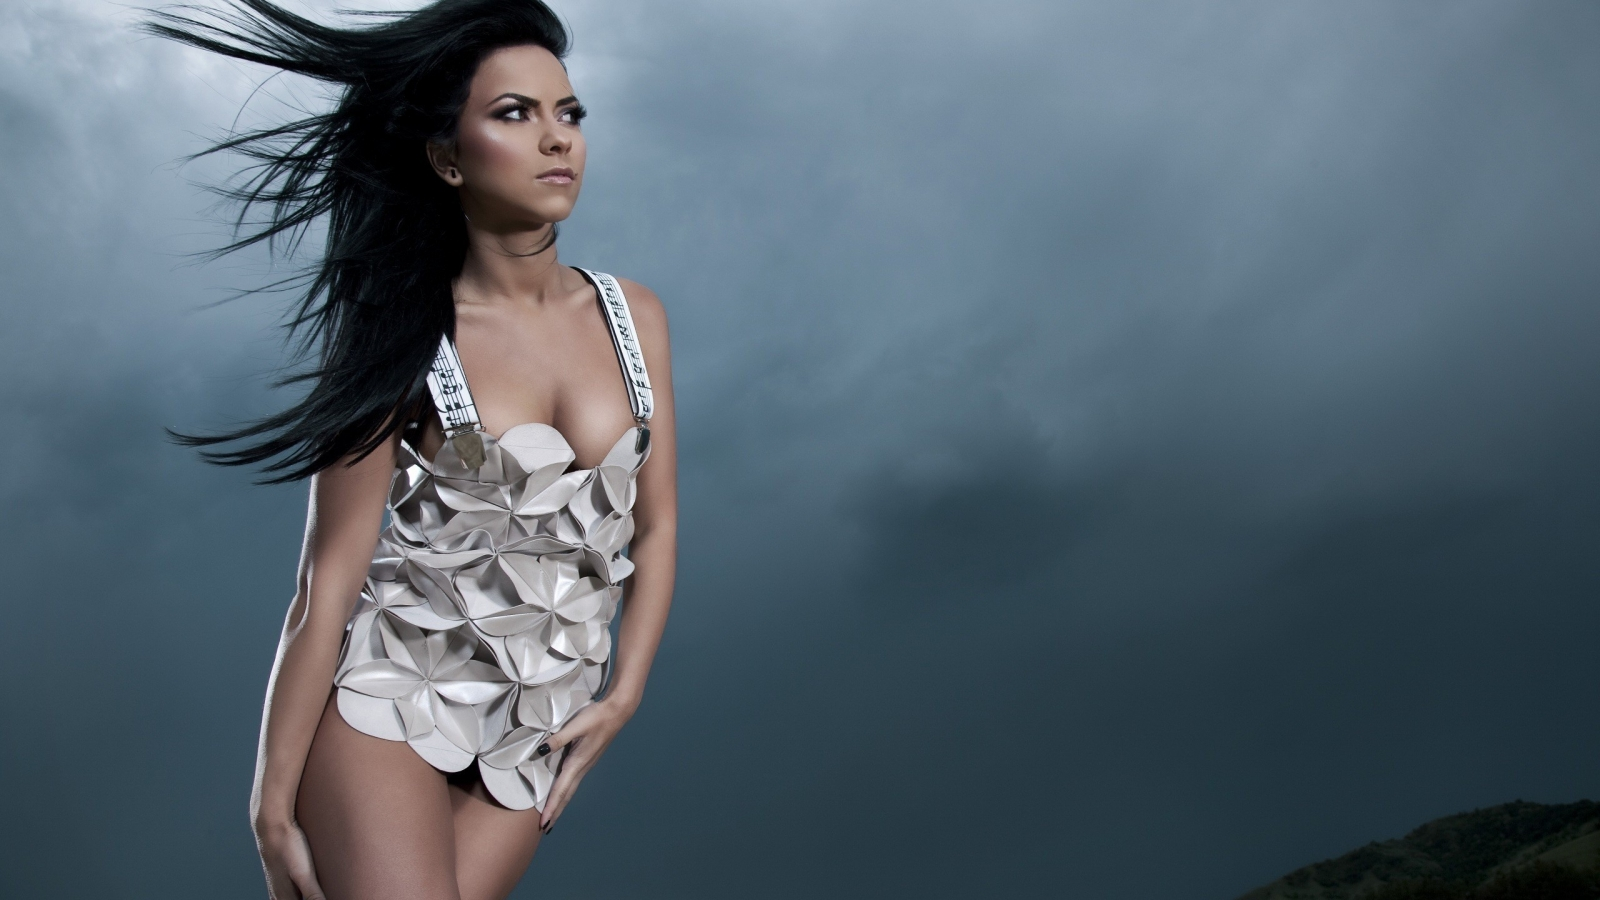 Inna Music Dress for 1600 x 900 HDTV resolution